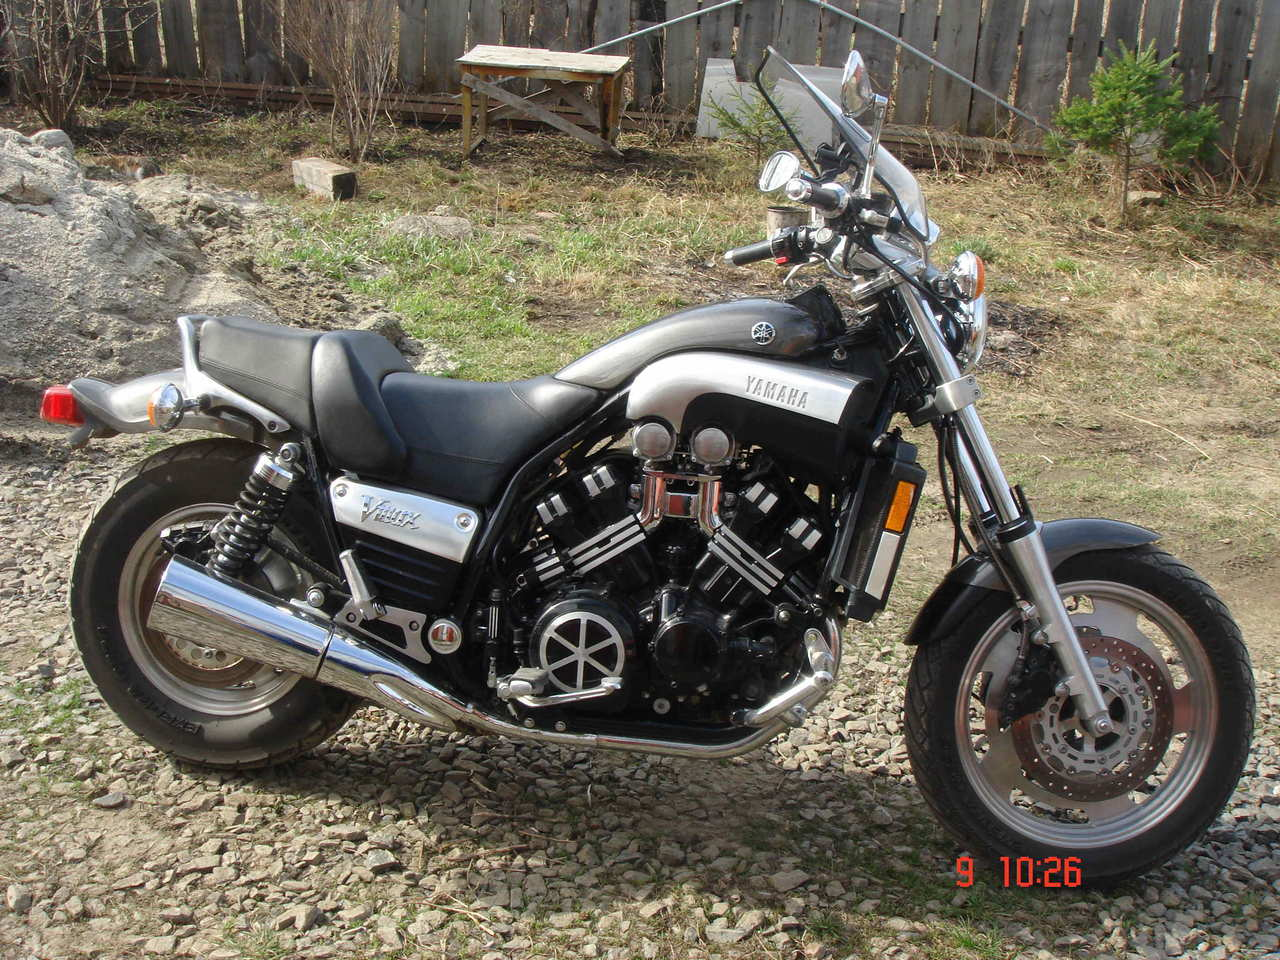 2001 yamaha vmax1200 pictures 1200cc for sale for Yamaha vmax outboard review